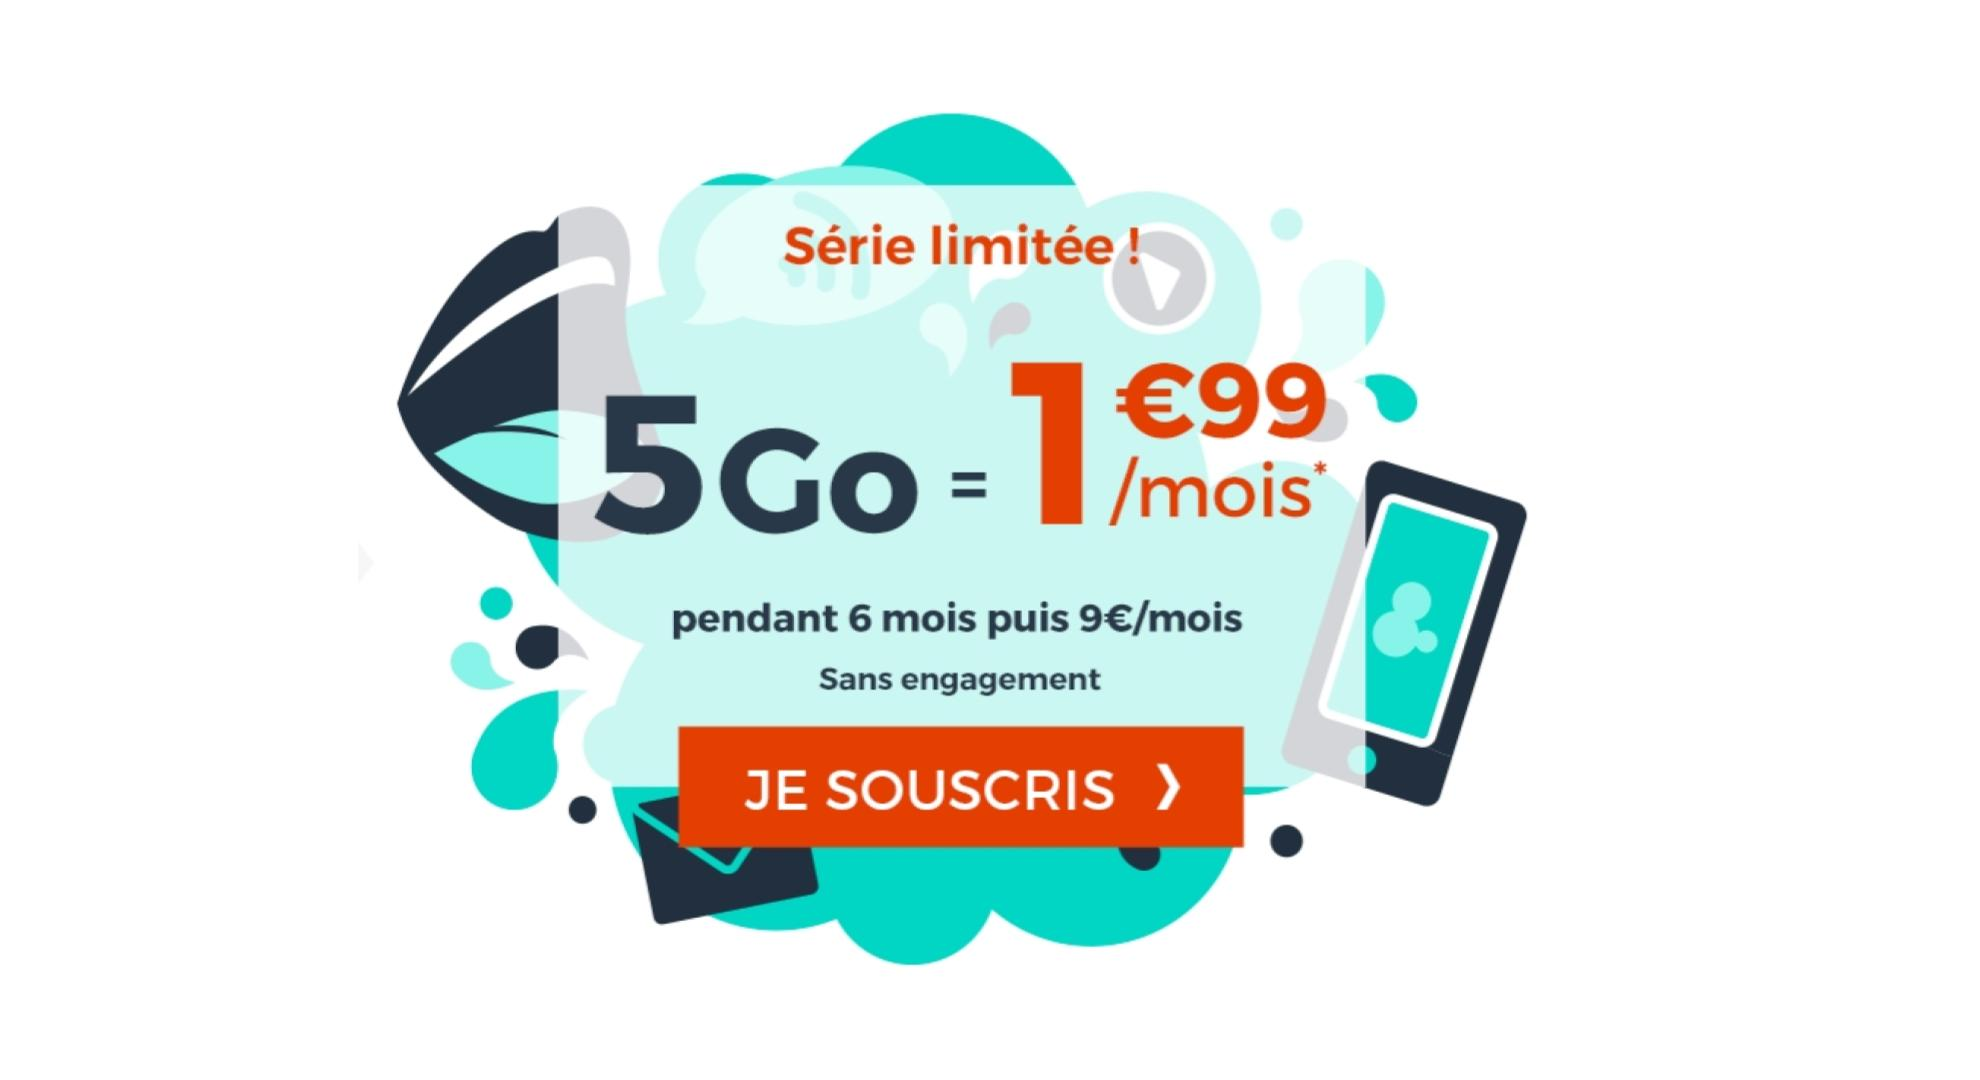 This package mobile 5 Gb costs only 1,99 euros per month for